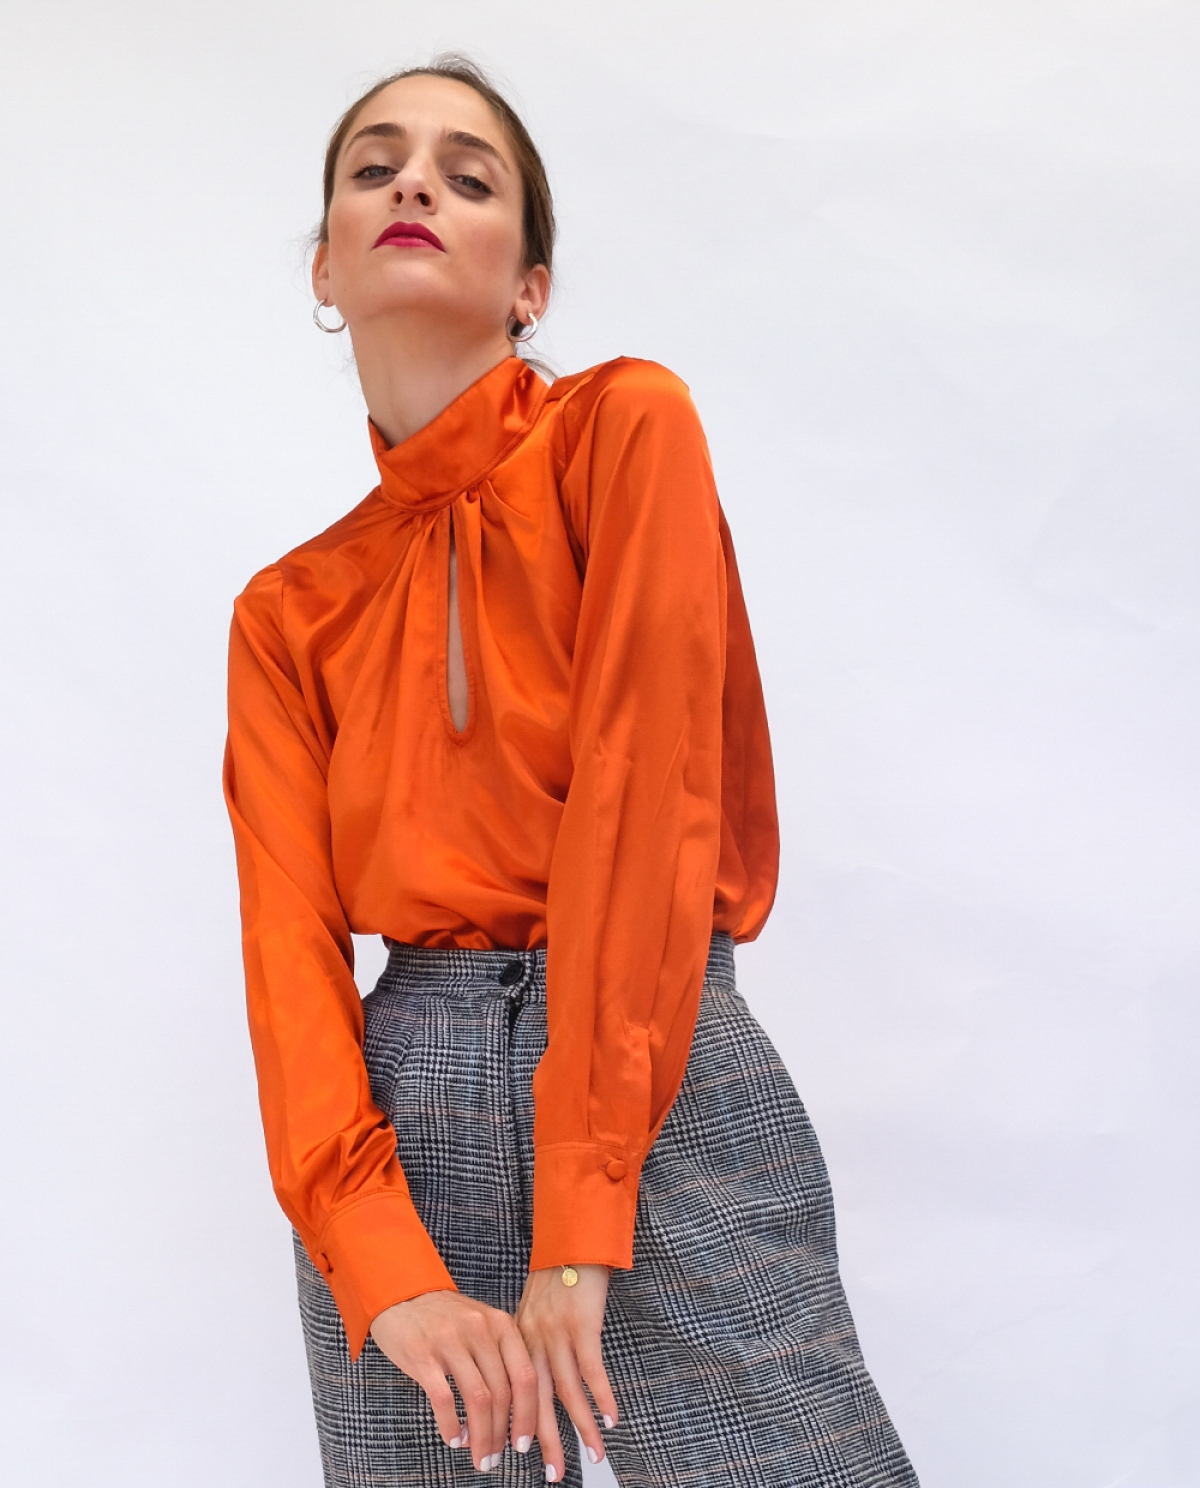 Jane Satin Orange Top